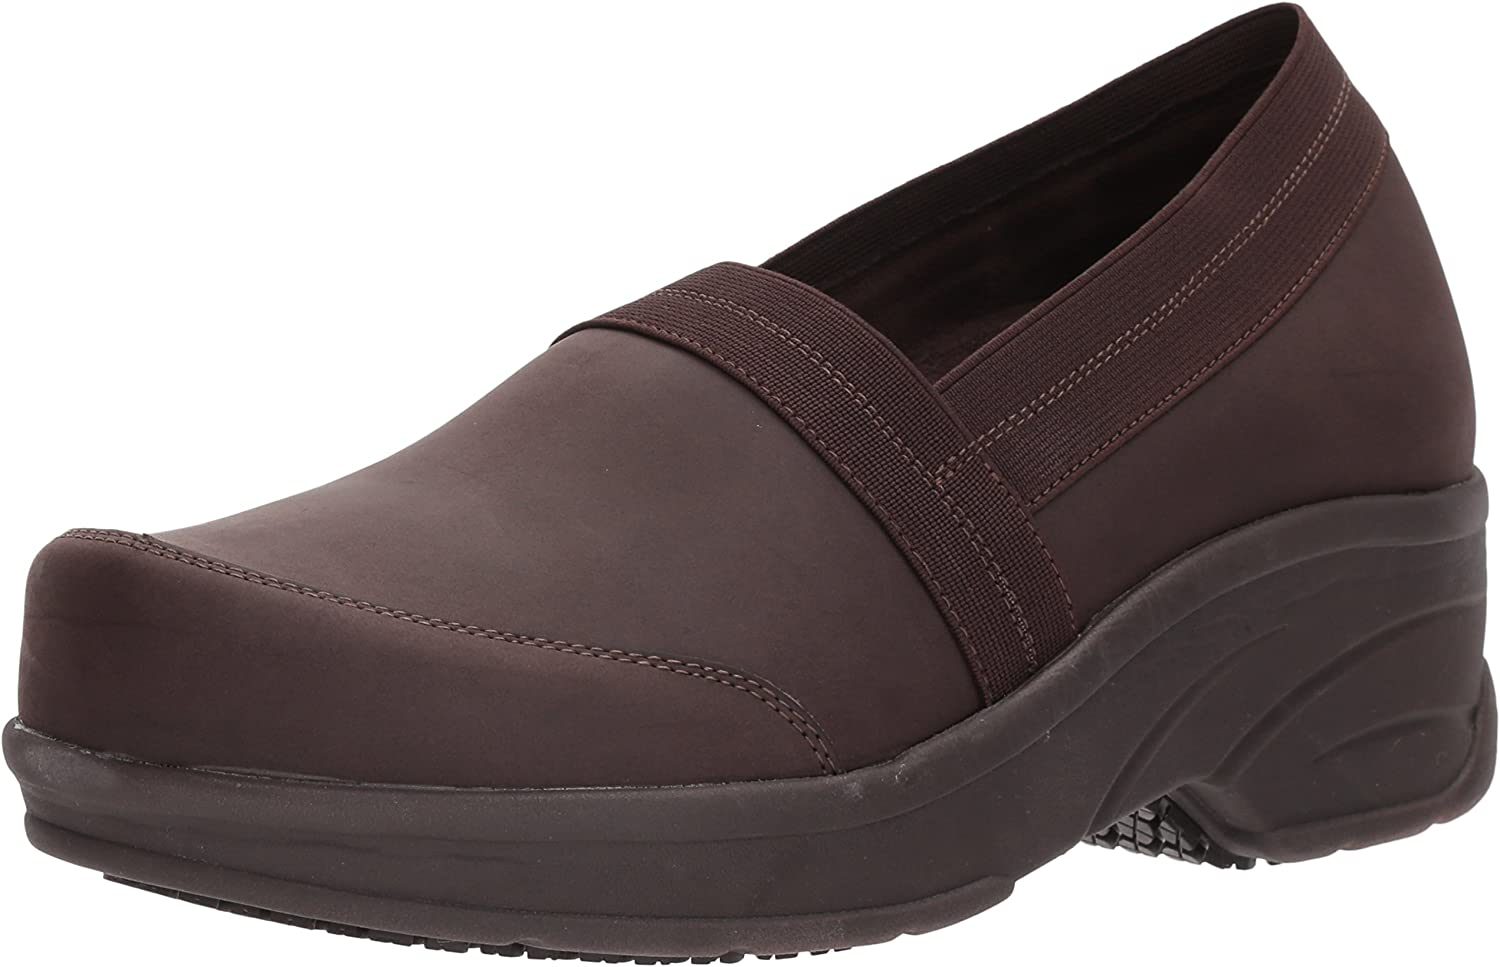 Easy Works Women's Attend Health Care Professional shoes